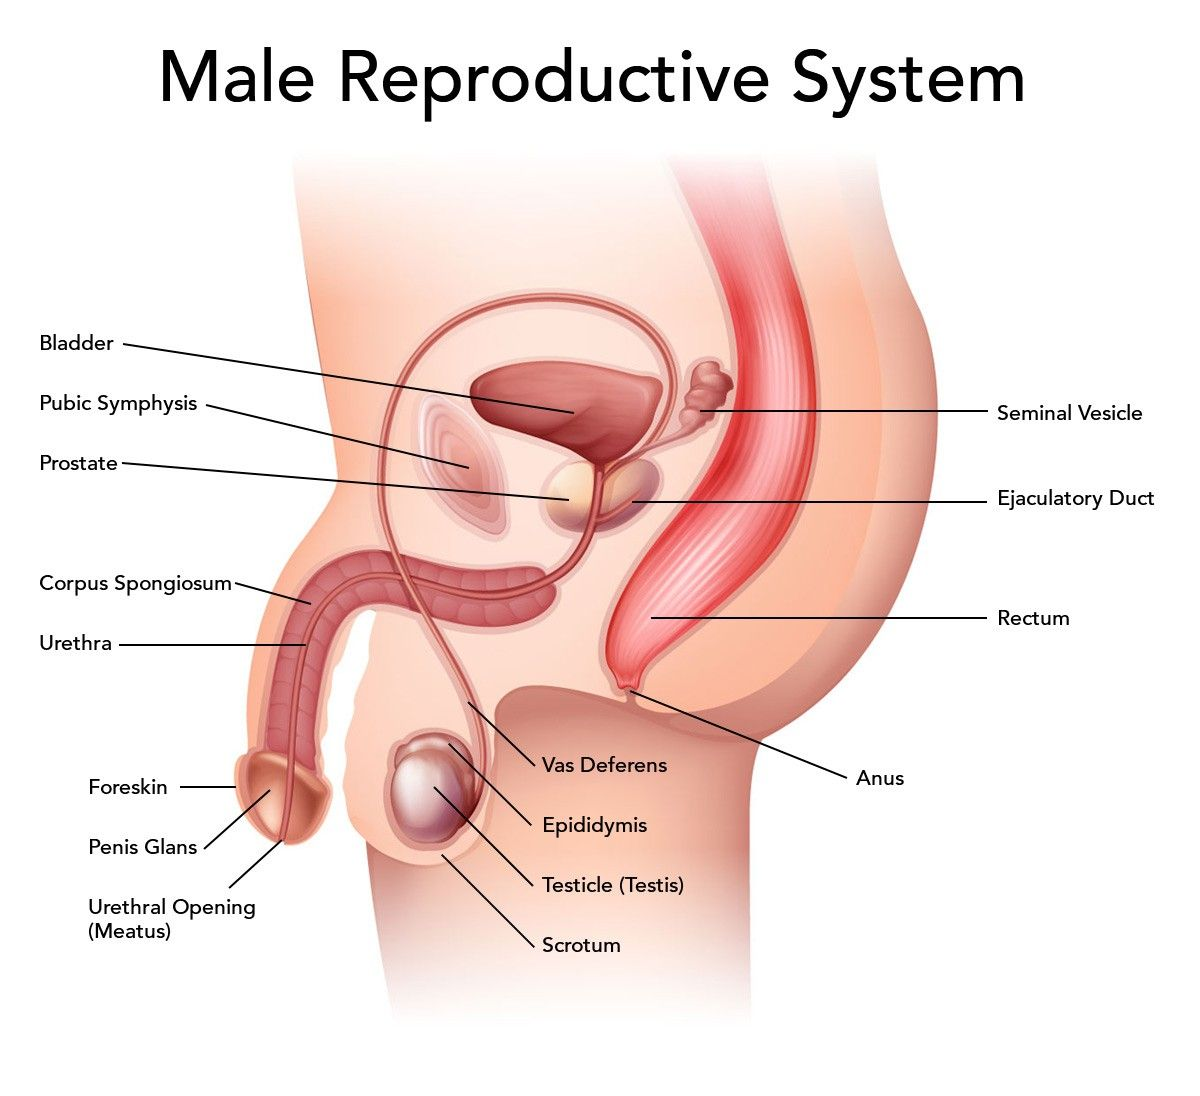 medium resolution of anatomical diagram of human body luxury female reproductive system diseases diseases in the male reproductive system female